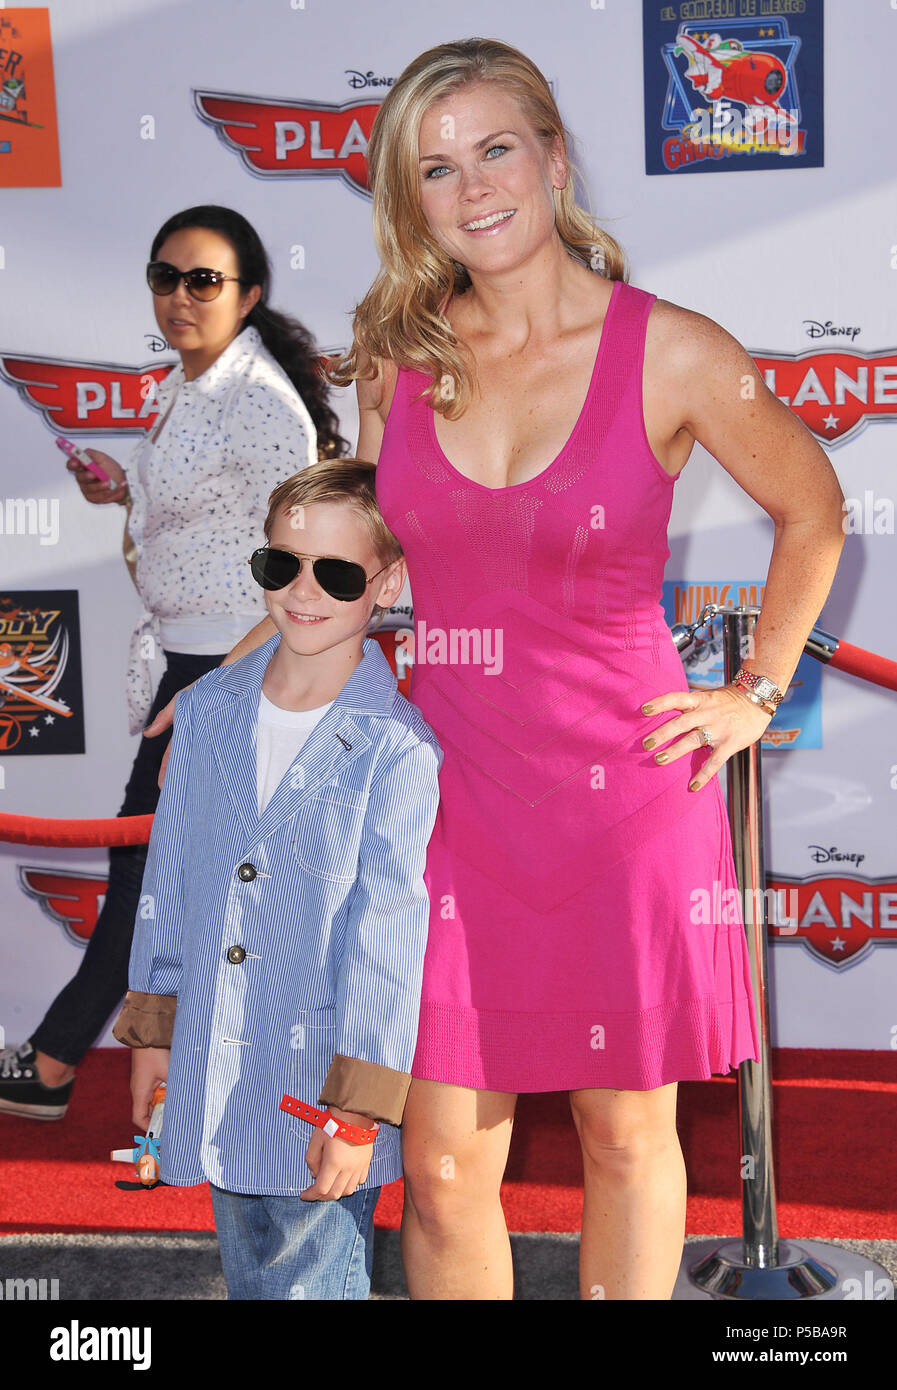 Alison Sweeney Family Pictures alison sweeney and son arriving at the planes premiere at